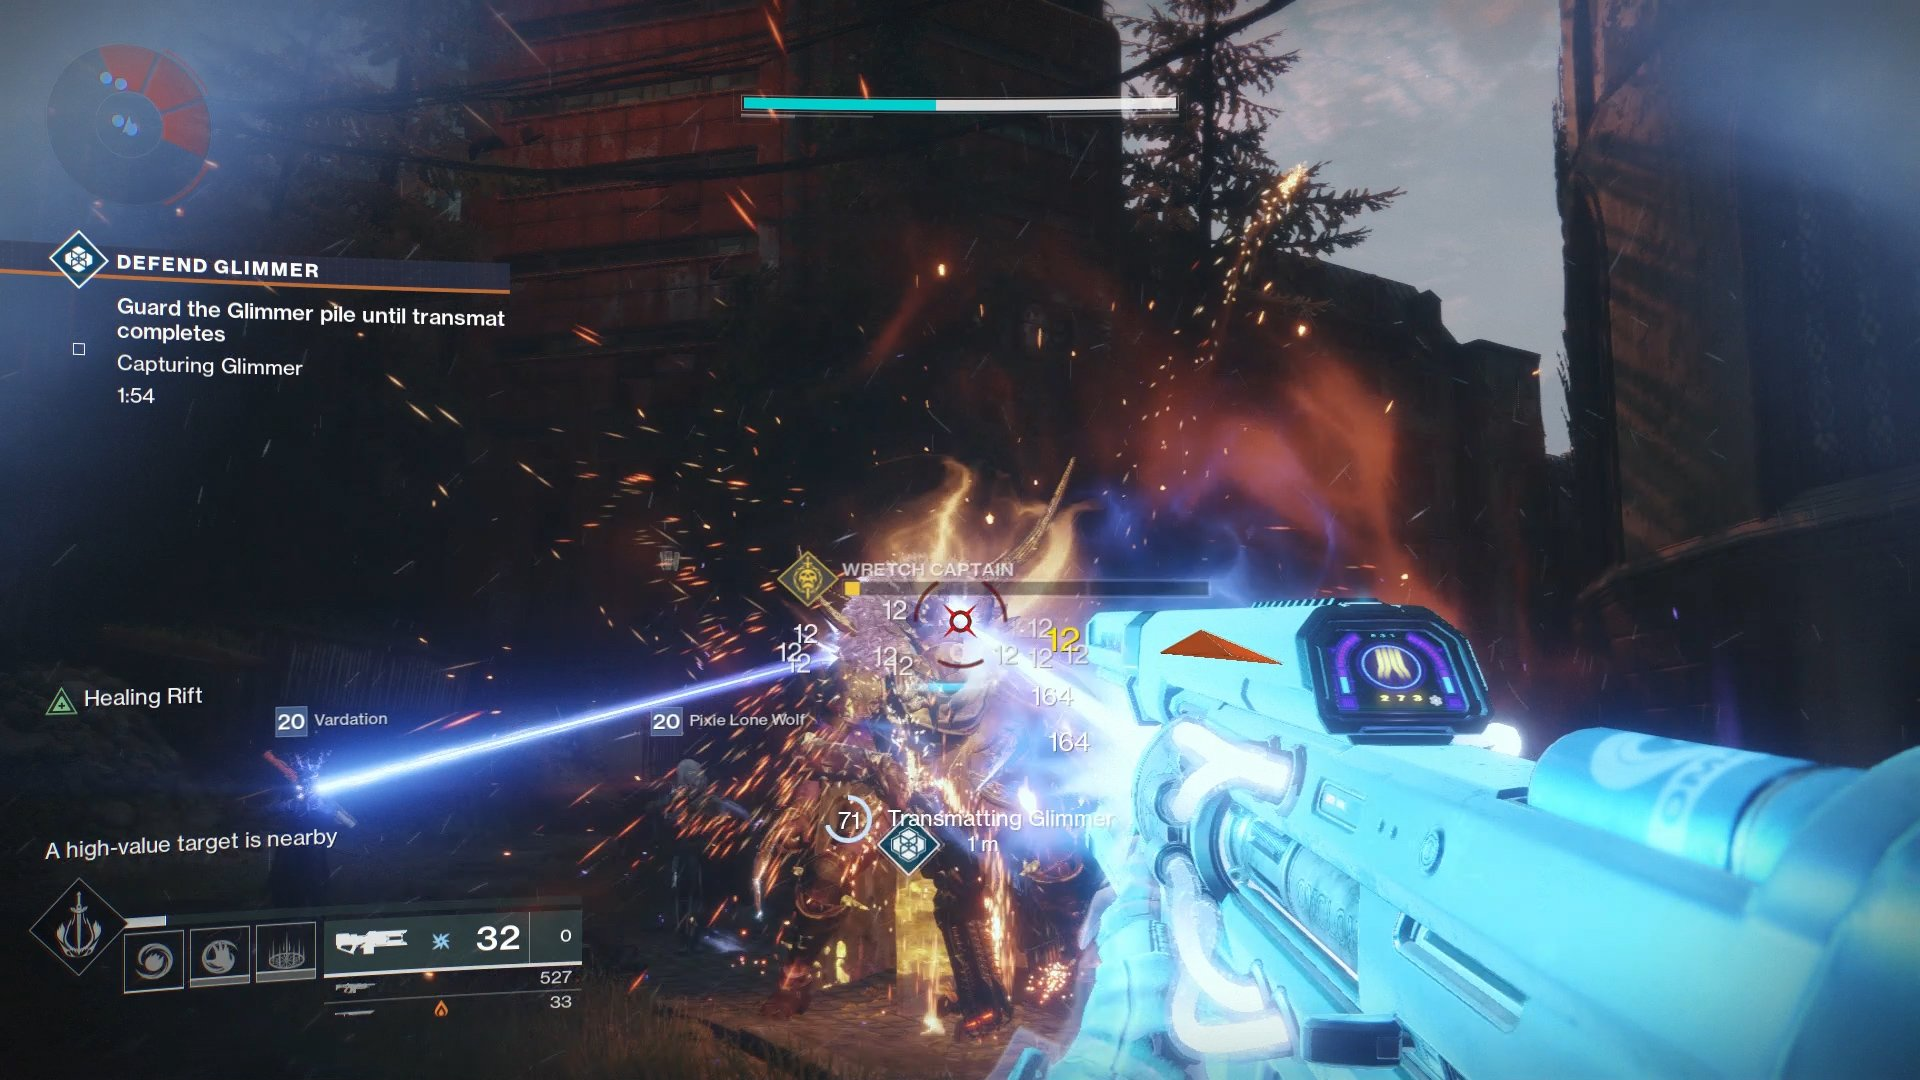 No matter your Power level, Heroic Public Events are chaotic moments that offer incredible rewards. They've been vastly improved over Destiny 1's Events.